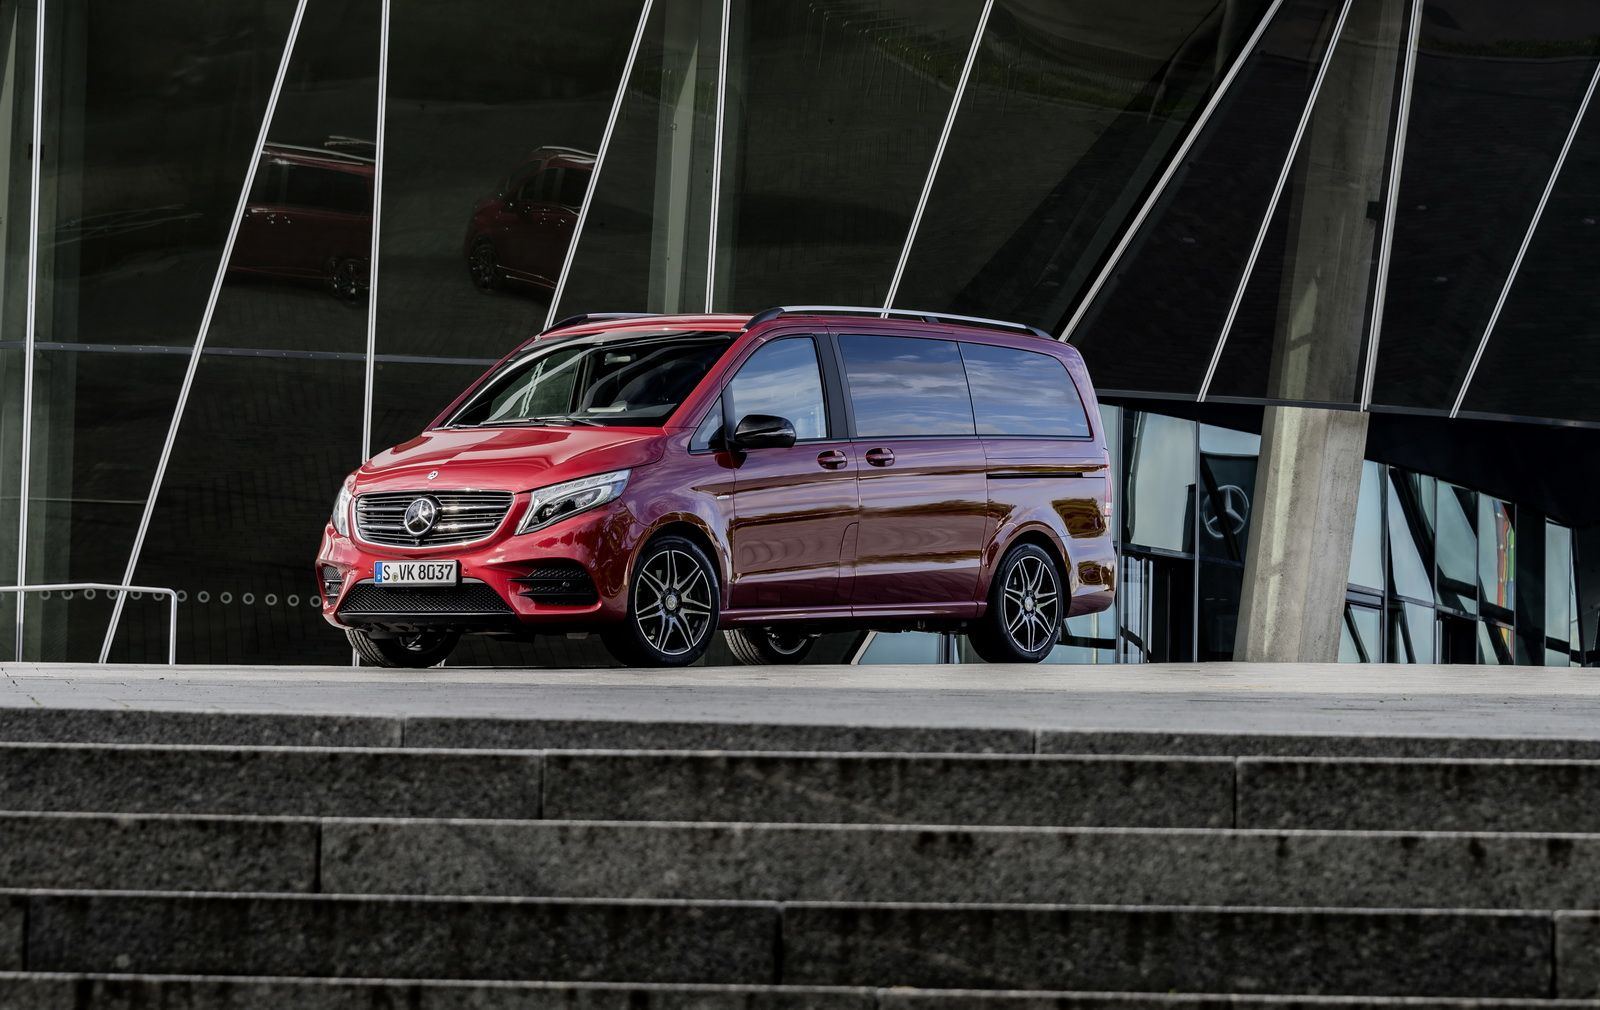 Mercedes v class gets full treatment from carlex design - Mercedes Benz V Class Gets Rise And Limited Edition Versions